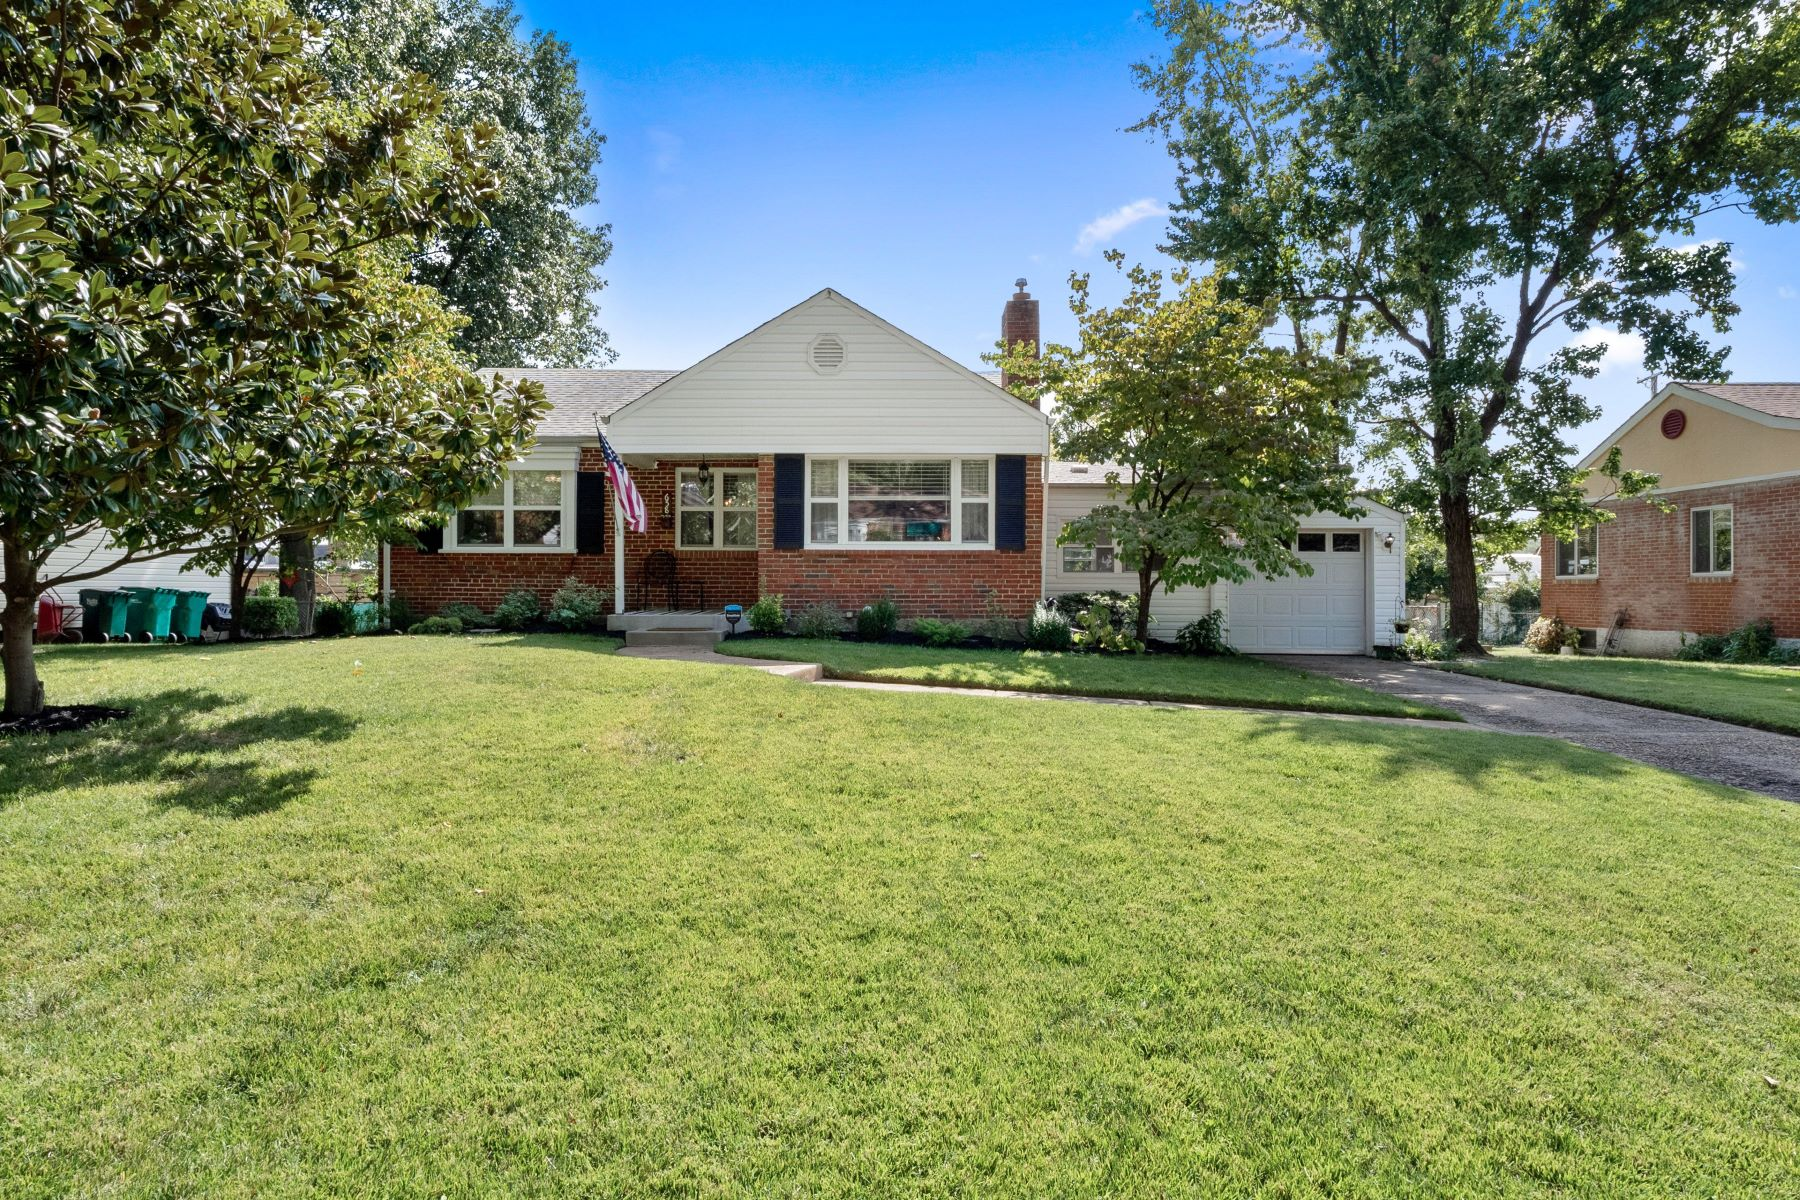 Single Family Homes for Sale at Stylish Ranch In The Webster Groves Community 658 Deerhurst Drive Webster Groves, Missouri 63119 United States